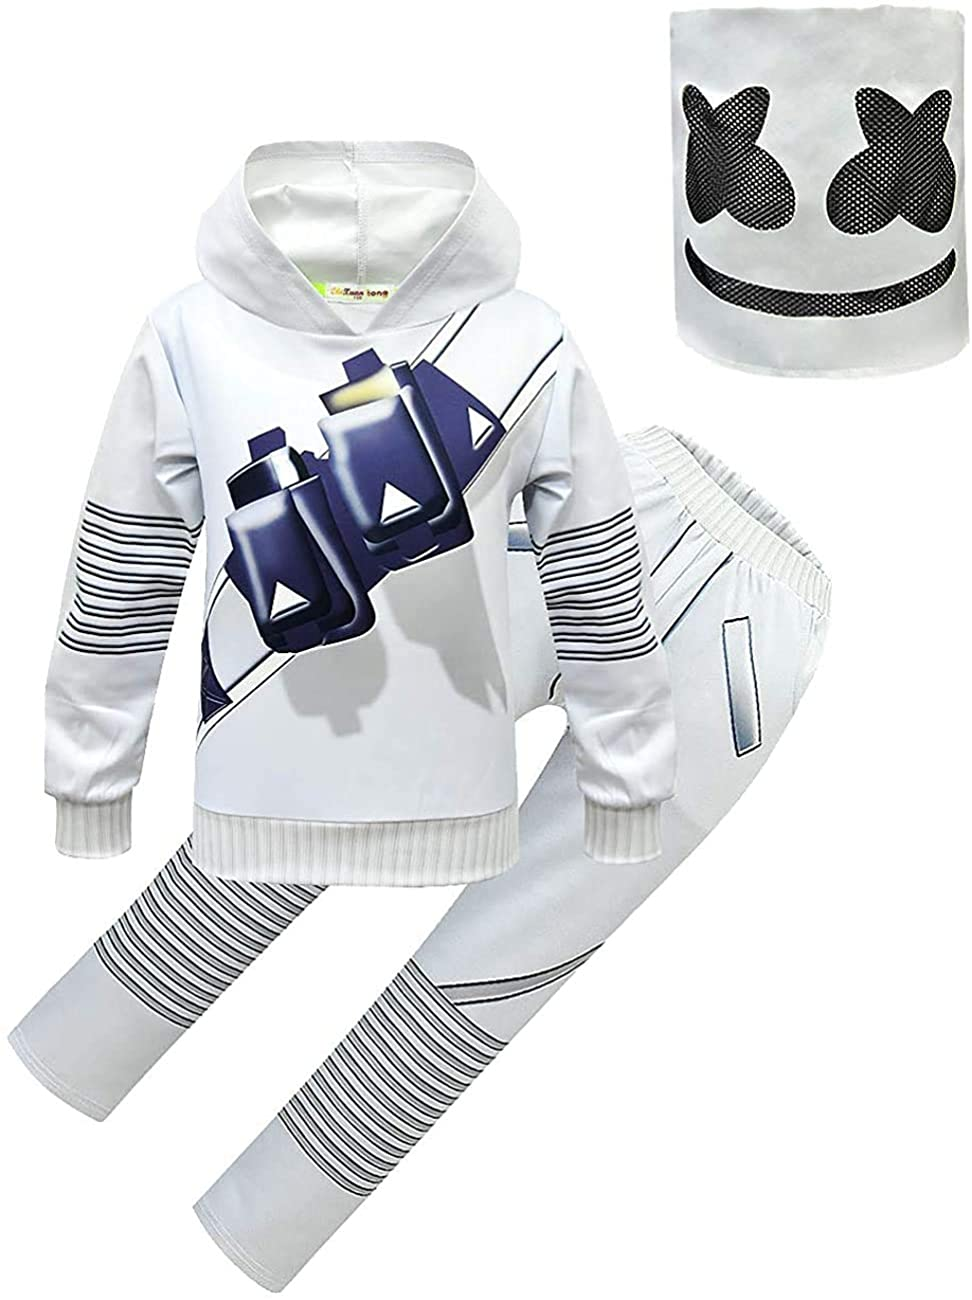 Kids Halloween Cosplay Costume Hooded Sweatshirt, 3PCS DJ Music Outfit Fashion Hoodies Sets Conclude Mask